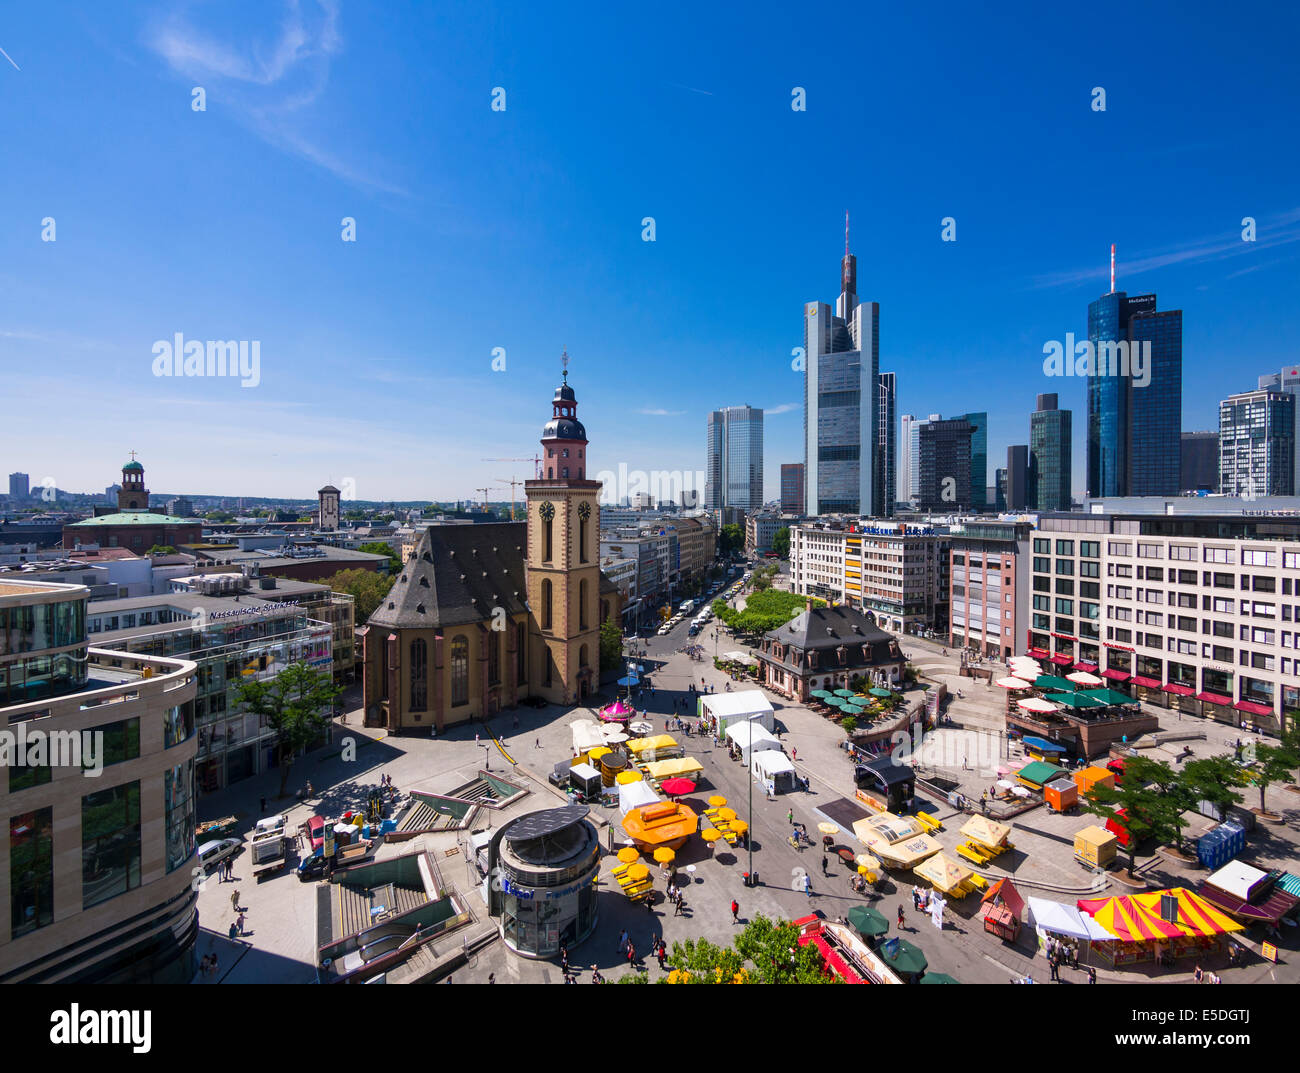 Germany, Hesse, Frankfurt, View to financial district with Commerzbank tower, European Central Bank, Helaba, Taunusturm, Stock Photo